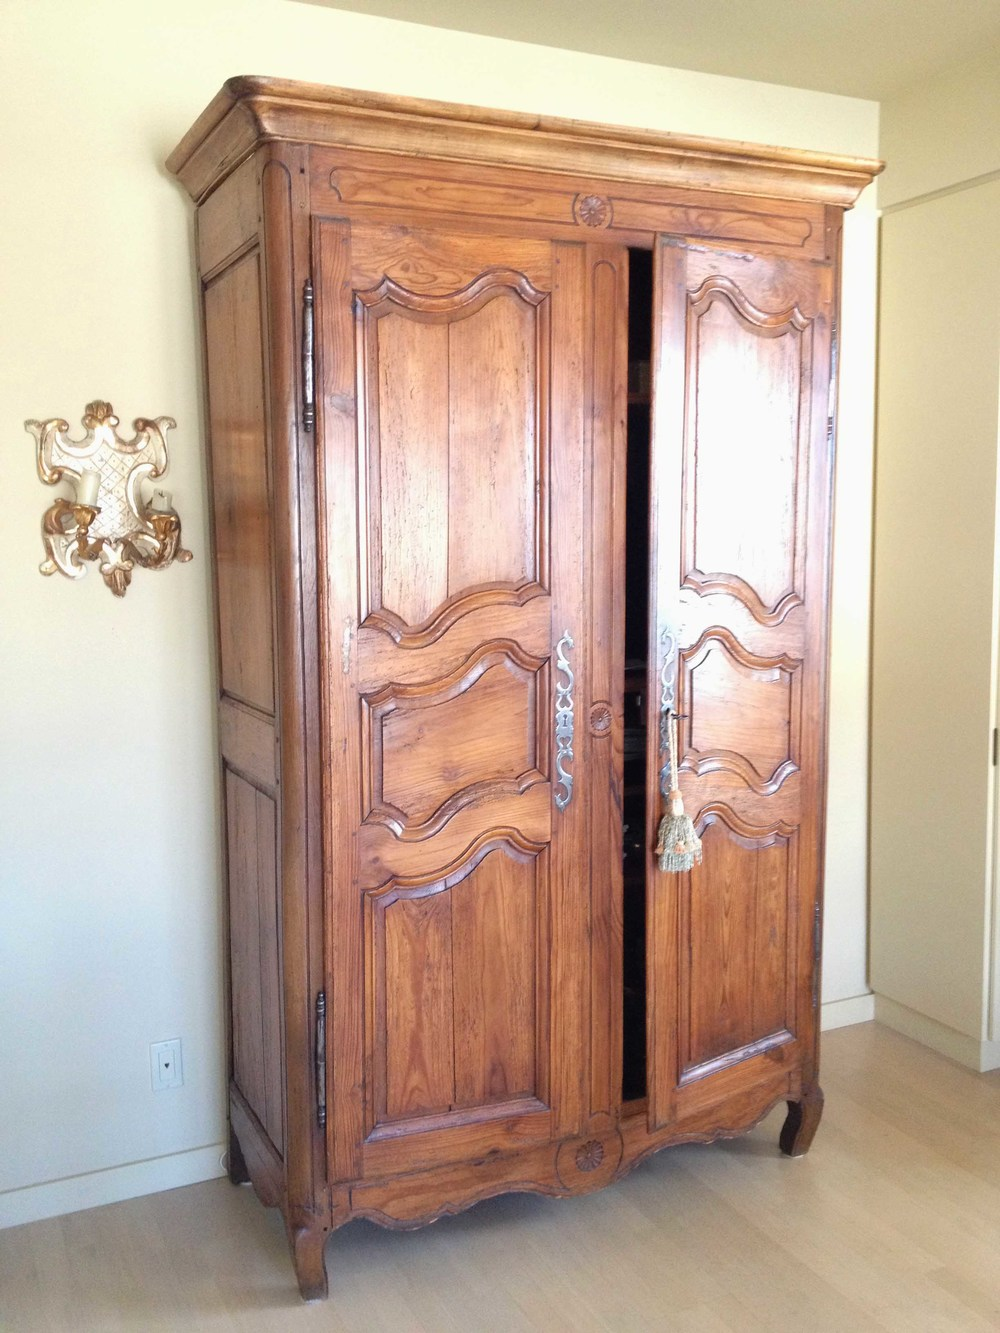 Antique 19th Century, Louis 15th Style French Armoire